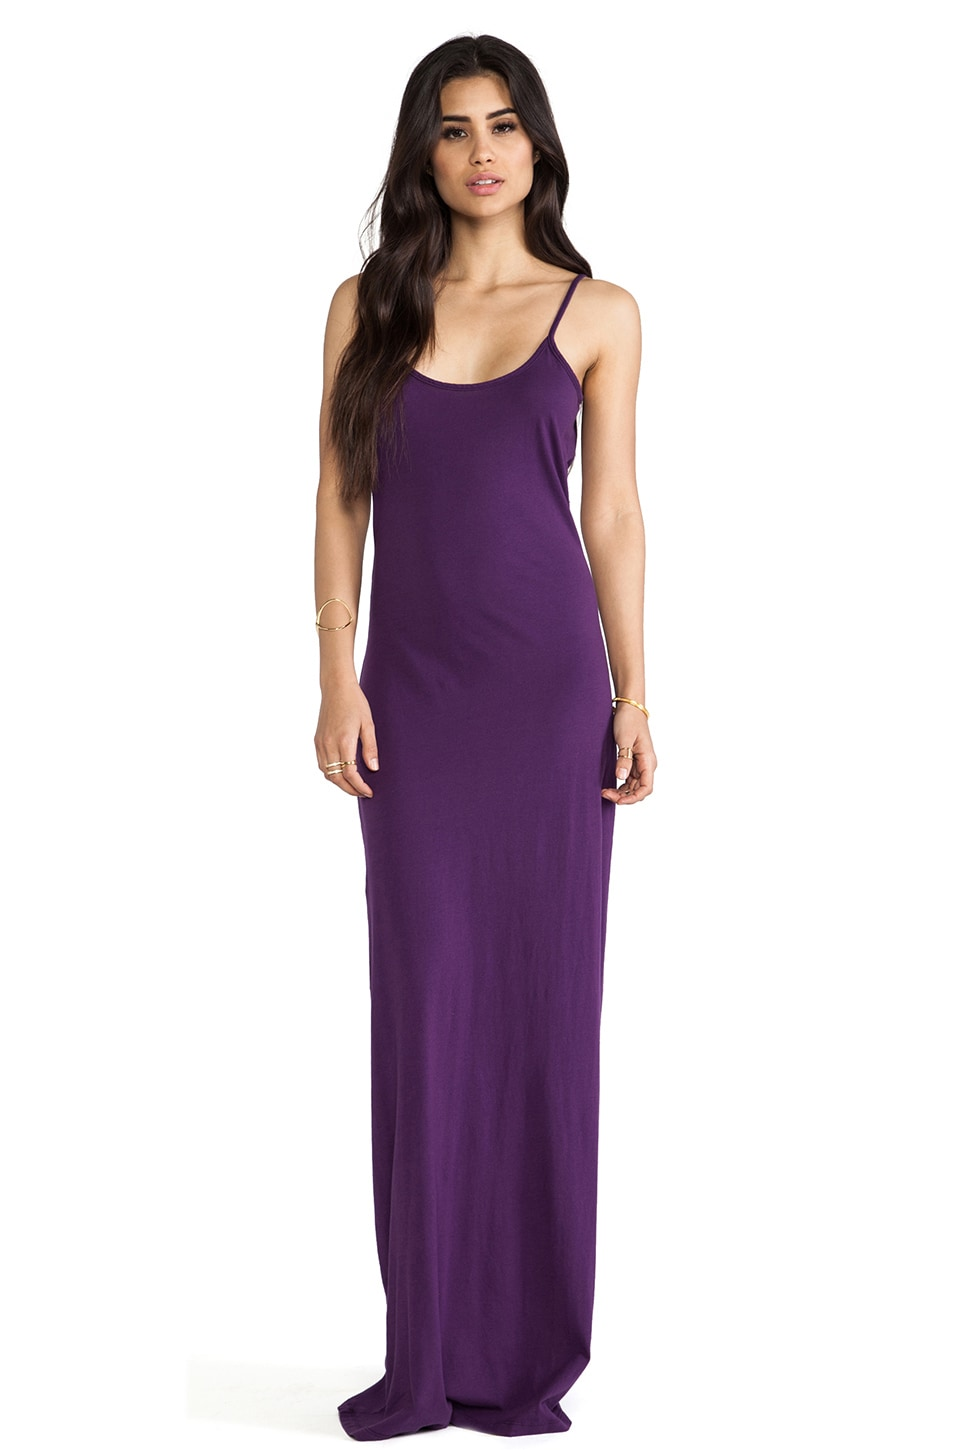 Bobi Supreme Jersey Low Back Maxi Dress in Plum